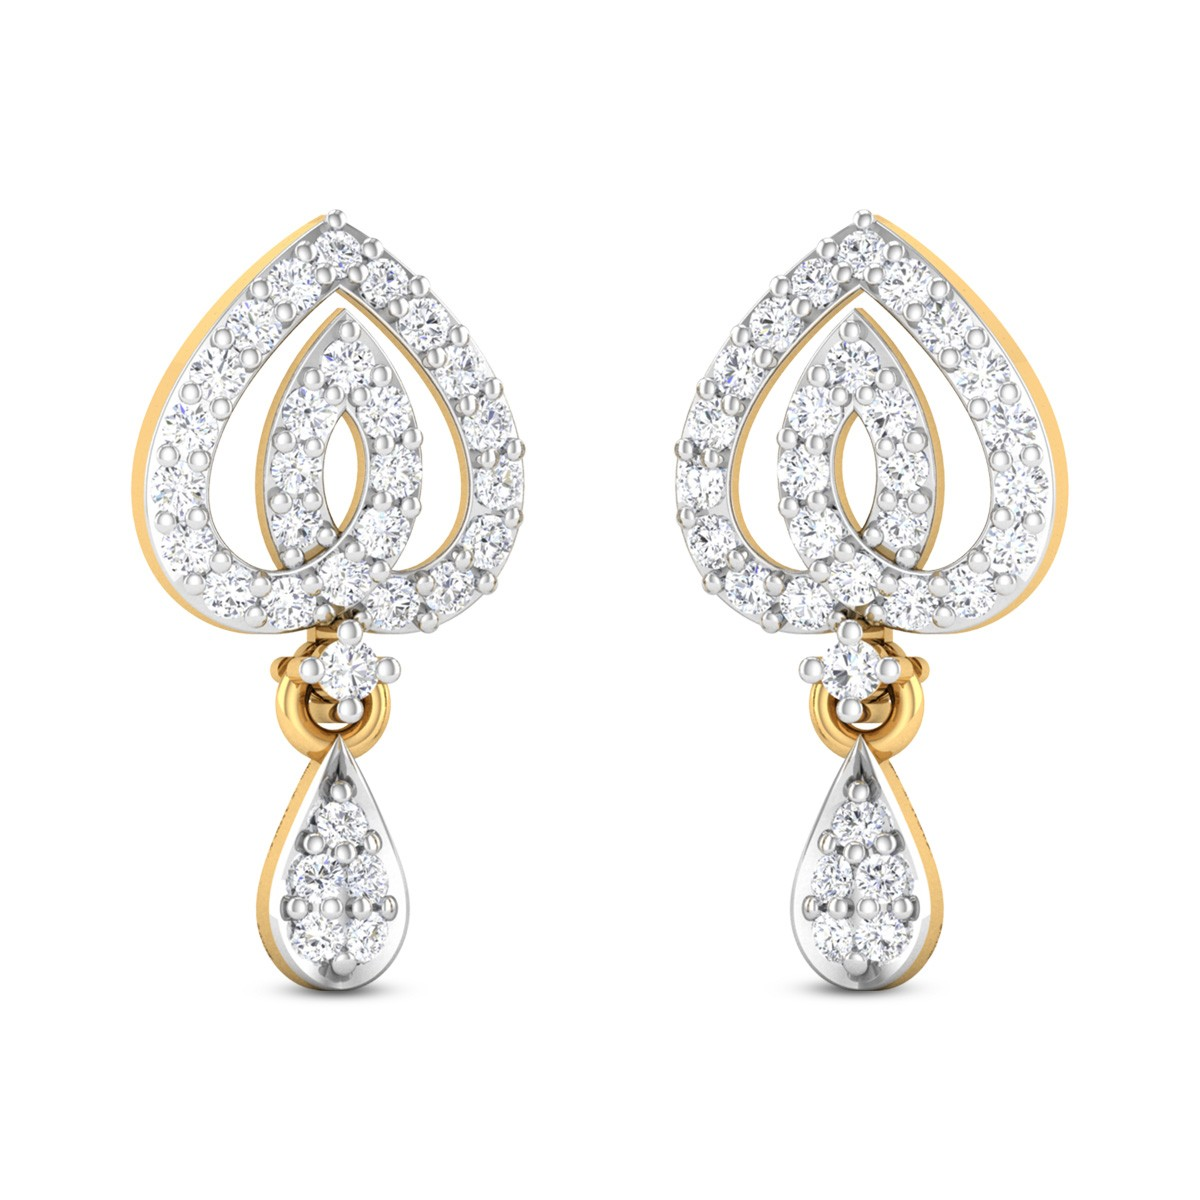 Glenna Diamond Earrings